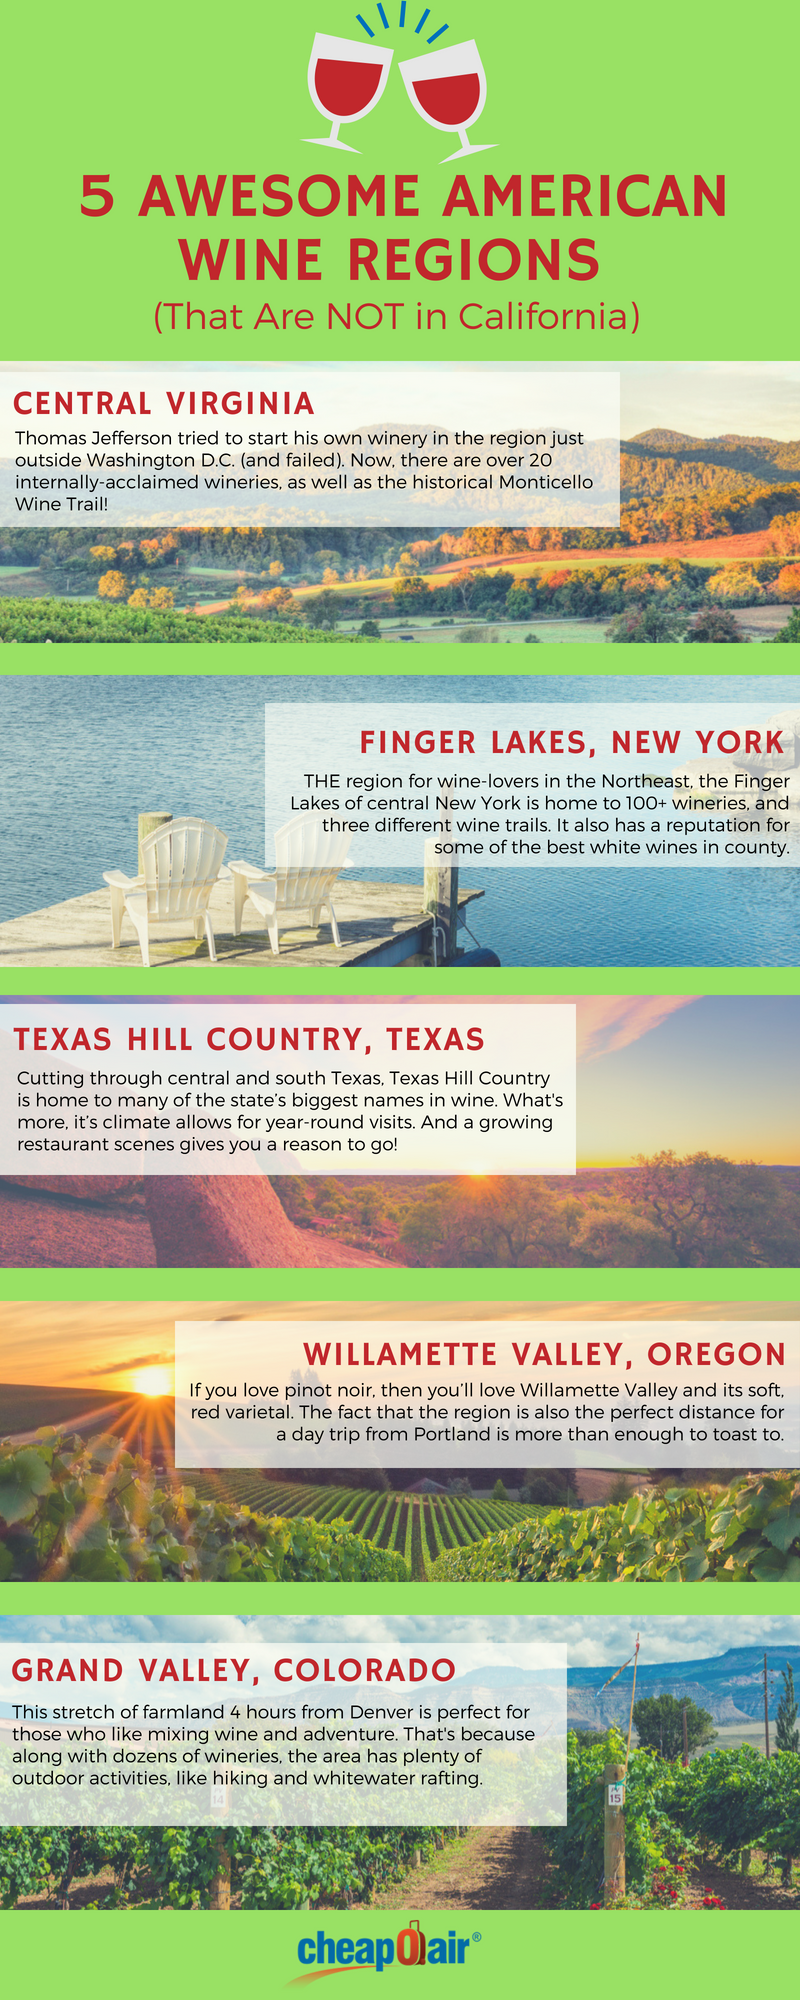 Awesome Us Wine Regions Not In California Miles Away Travel Blog